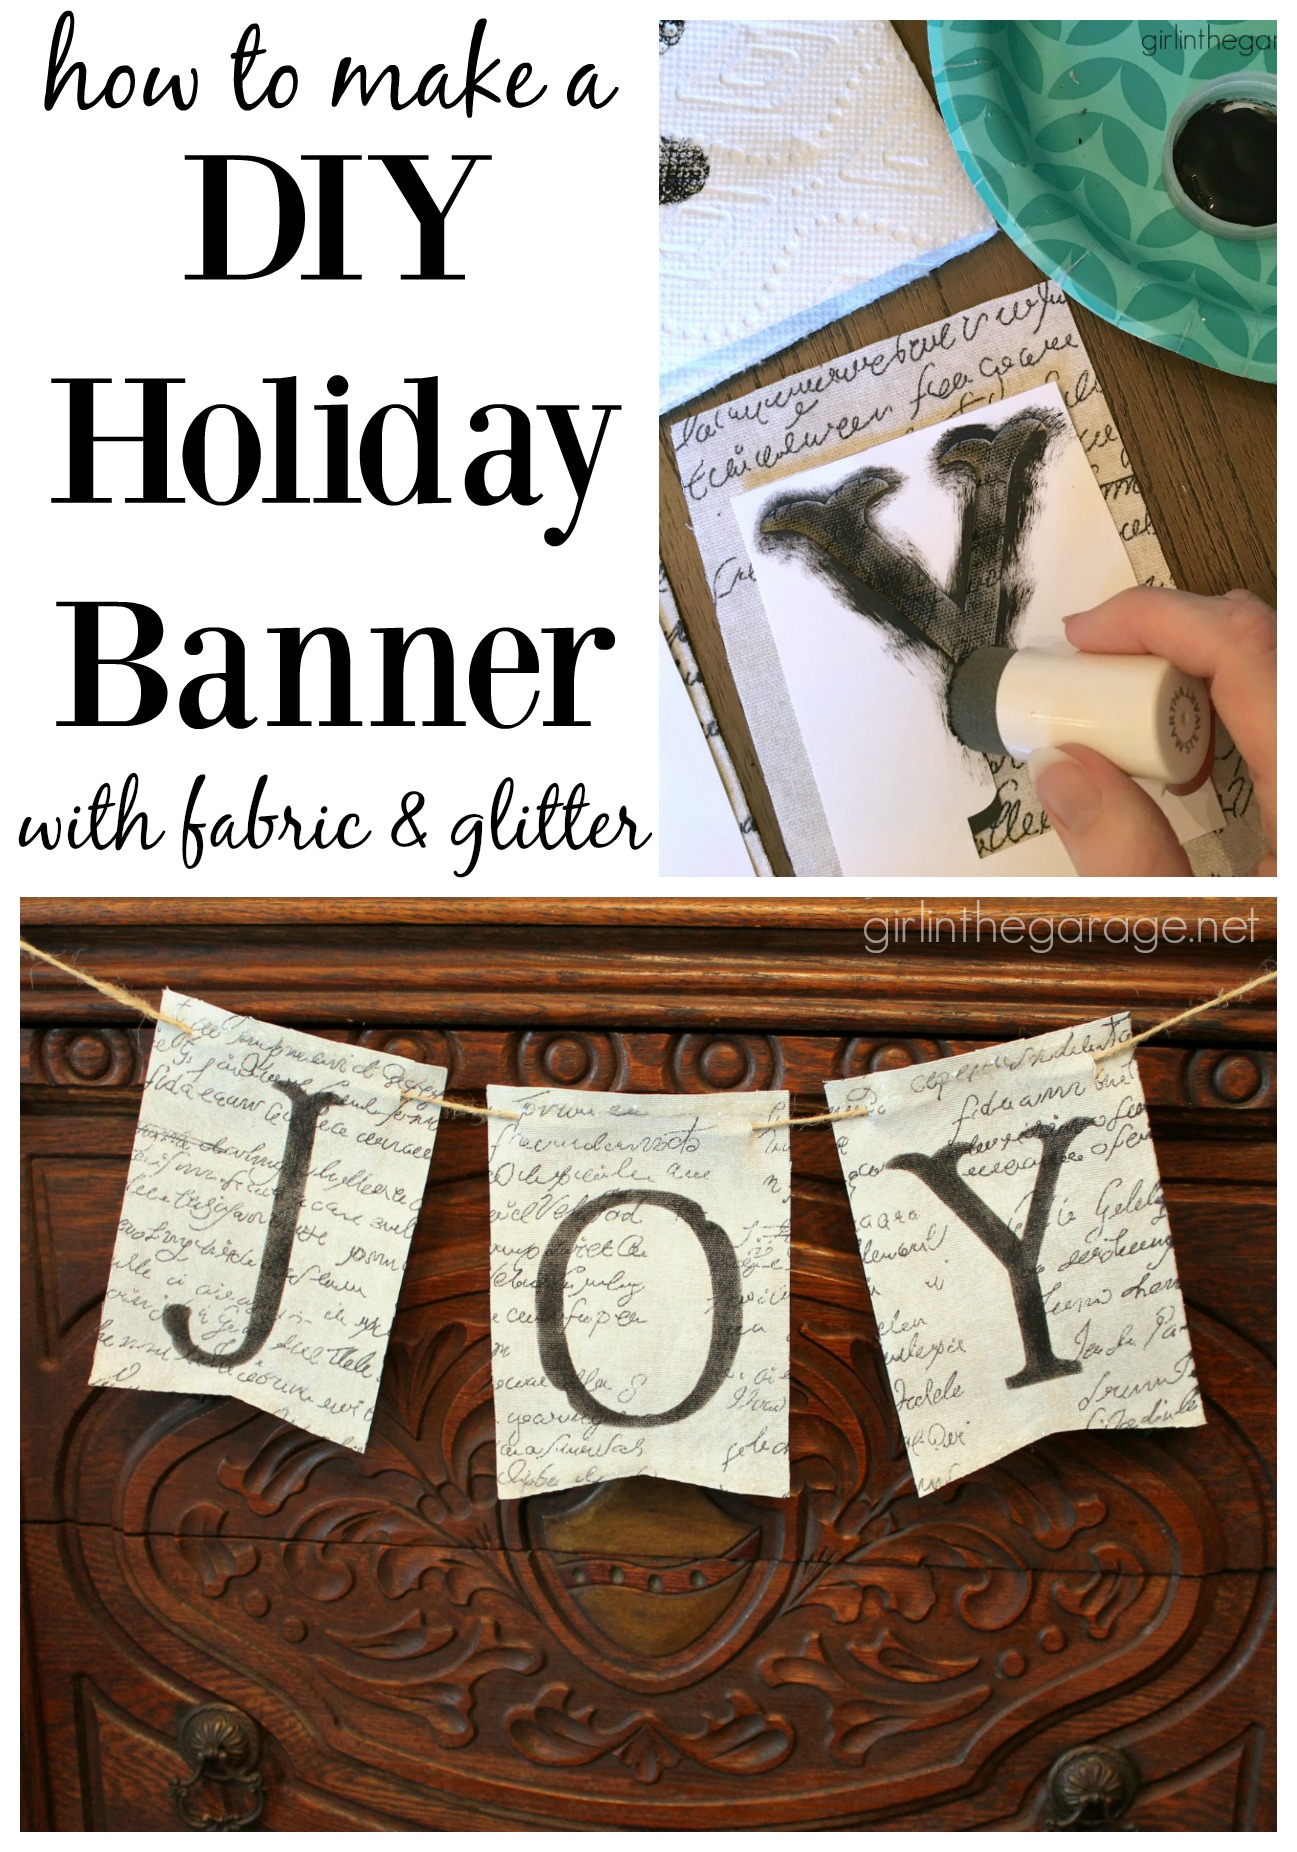 How to make an easy DIY fabric banner with glitter for the holidays - Girl in the Garage